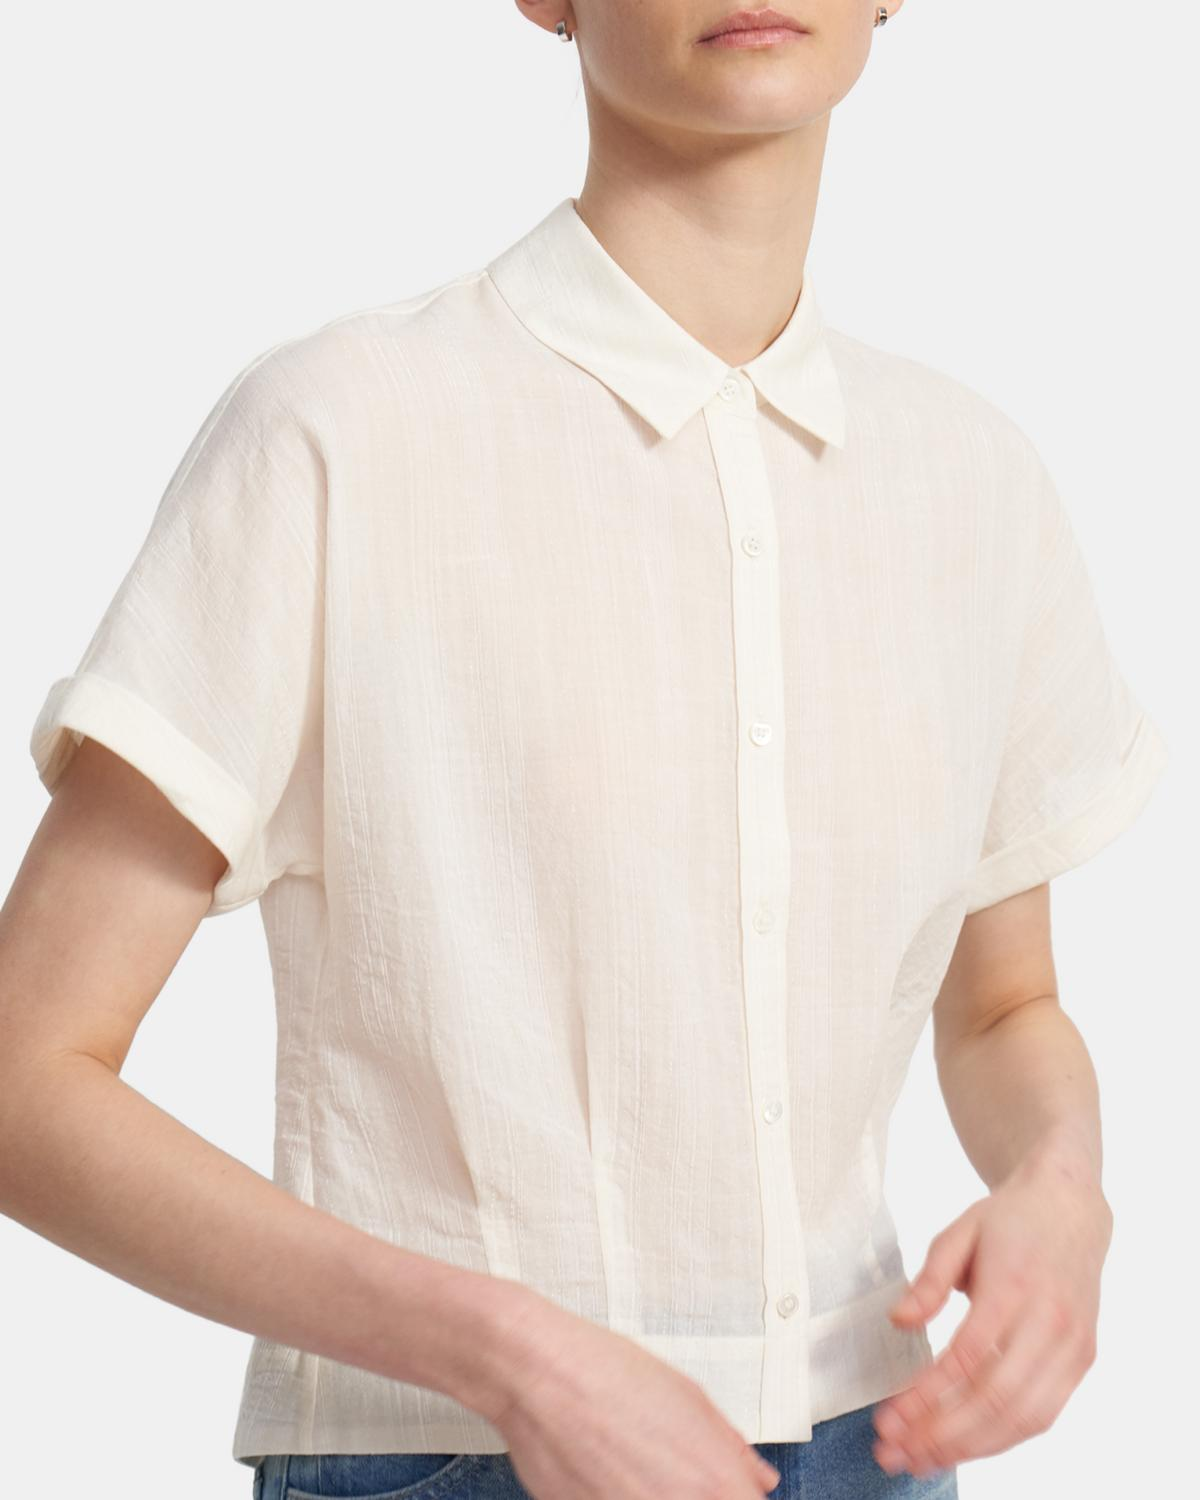 Cropped Button Up Shirt in Cotton-Viscose 0 - click to view larger image